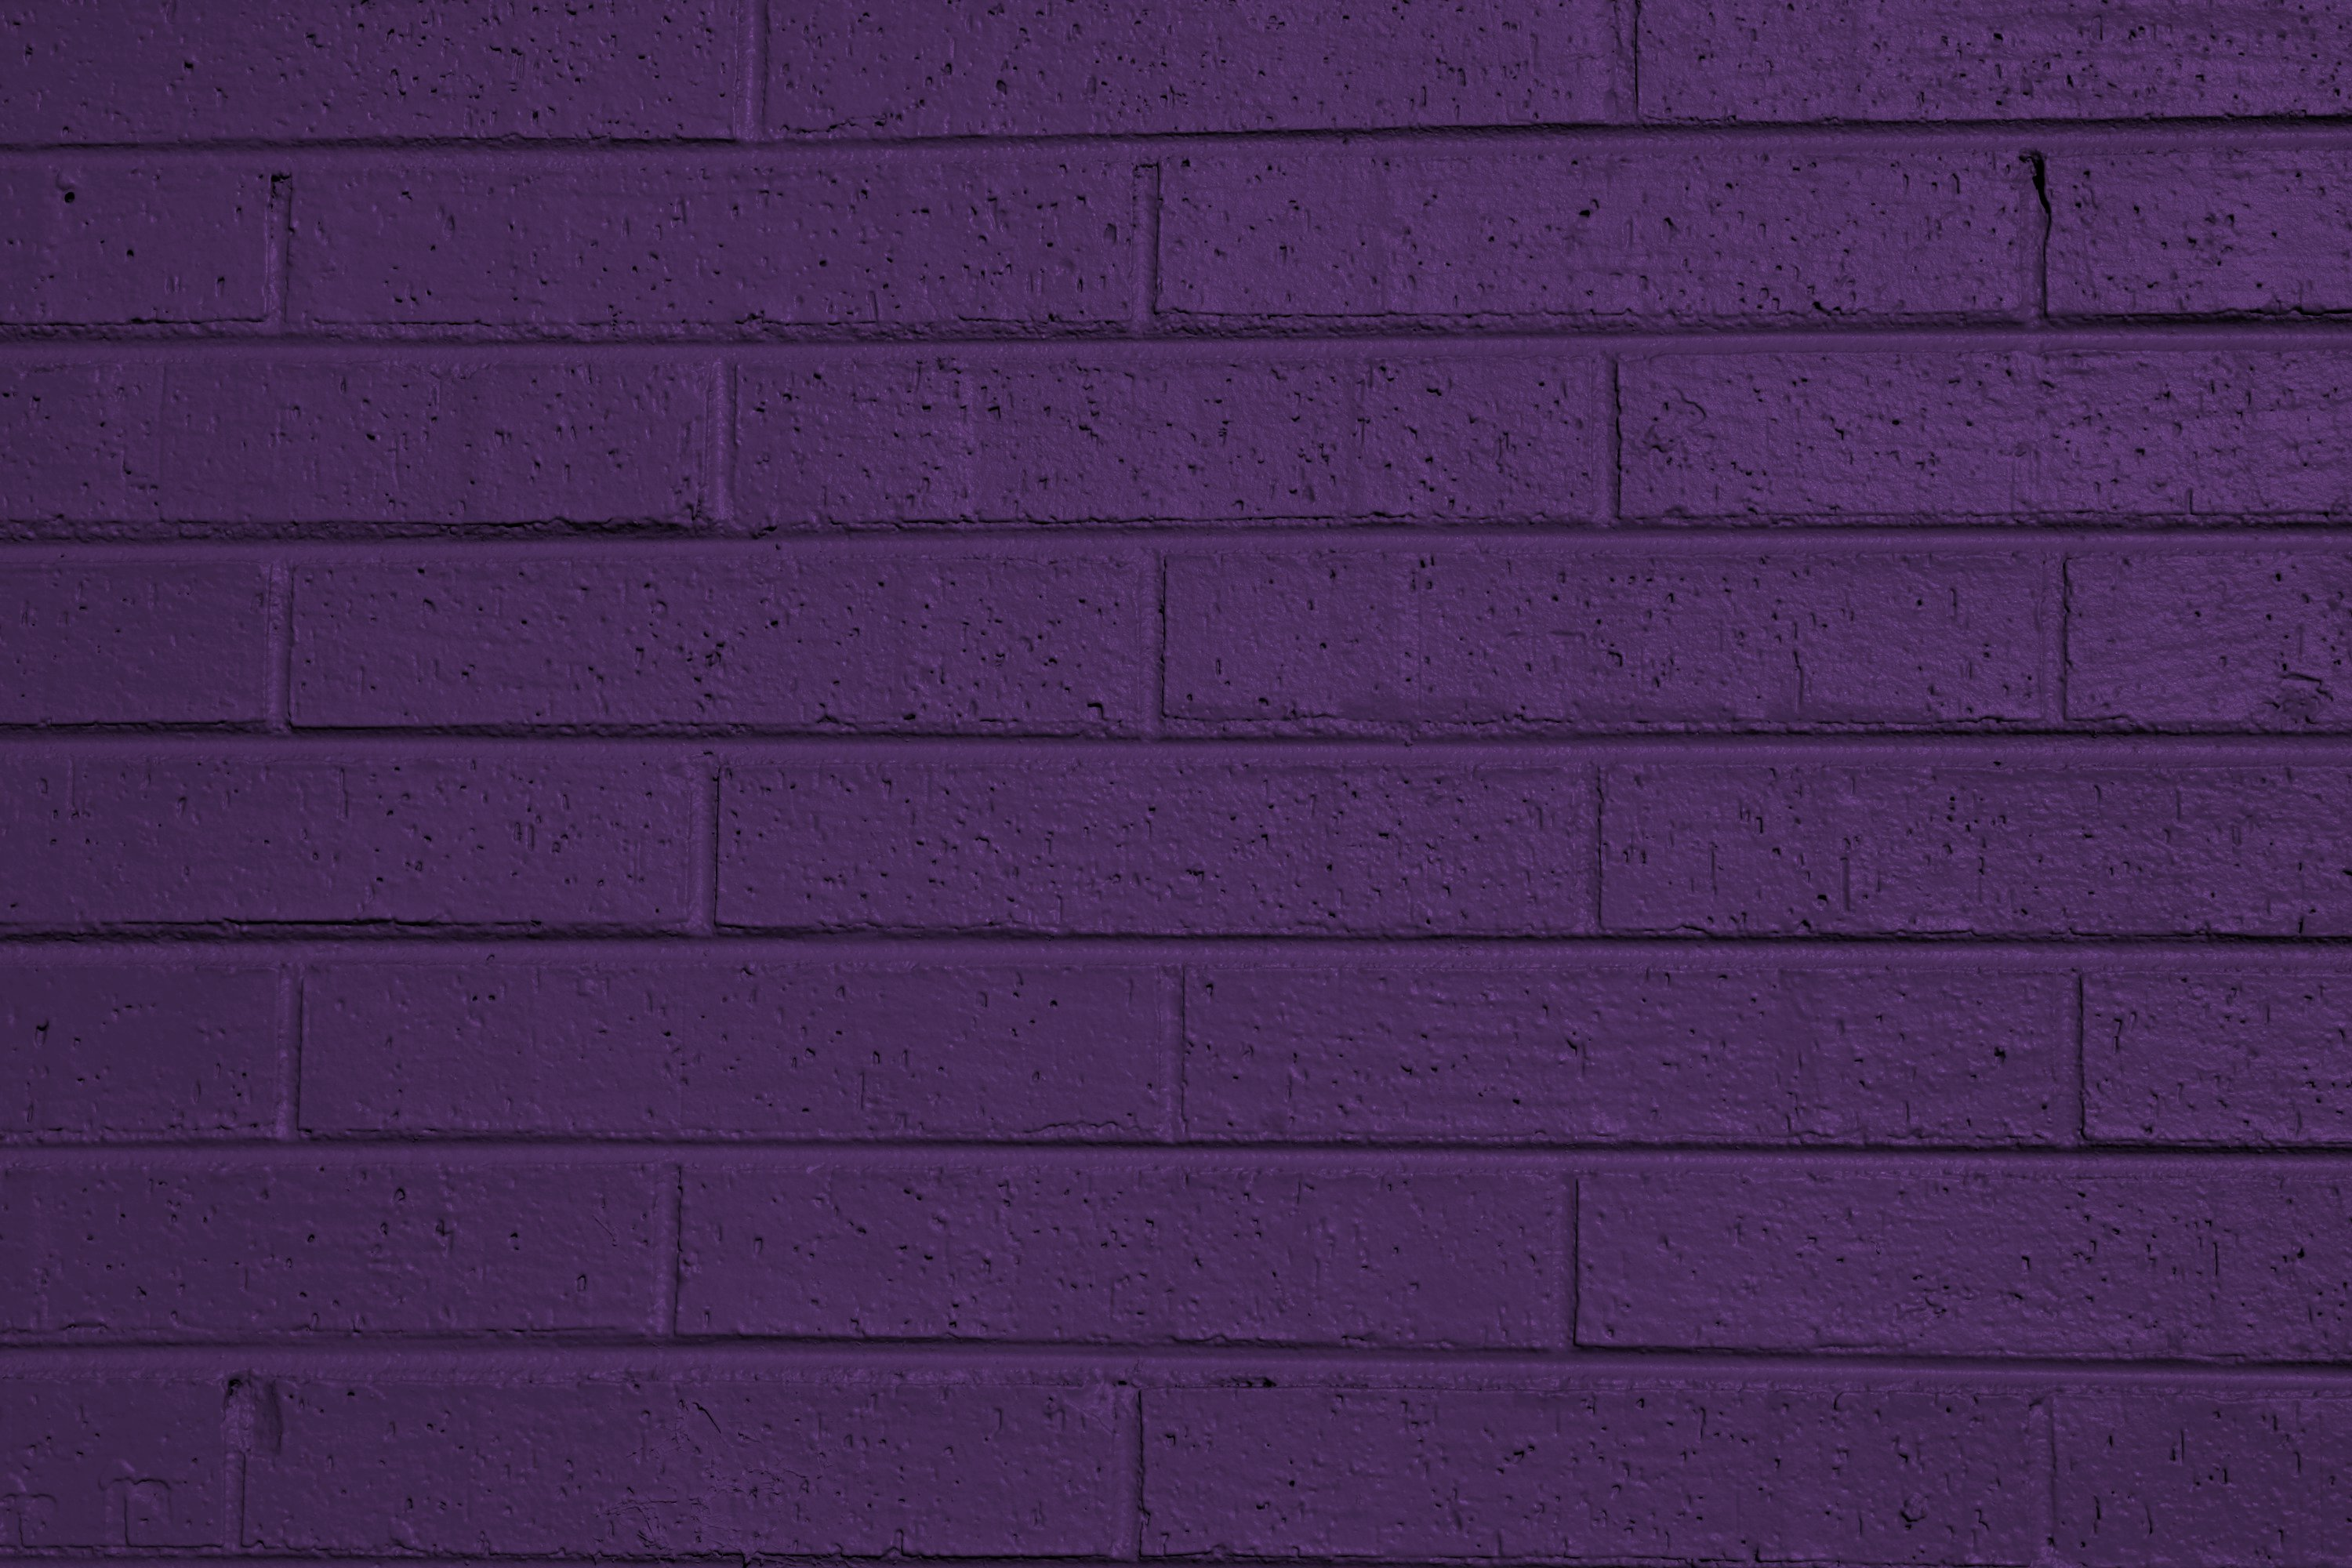 dark purple painted brick ball texture picture free